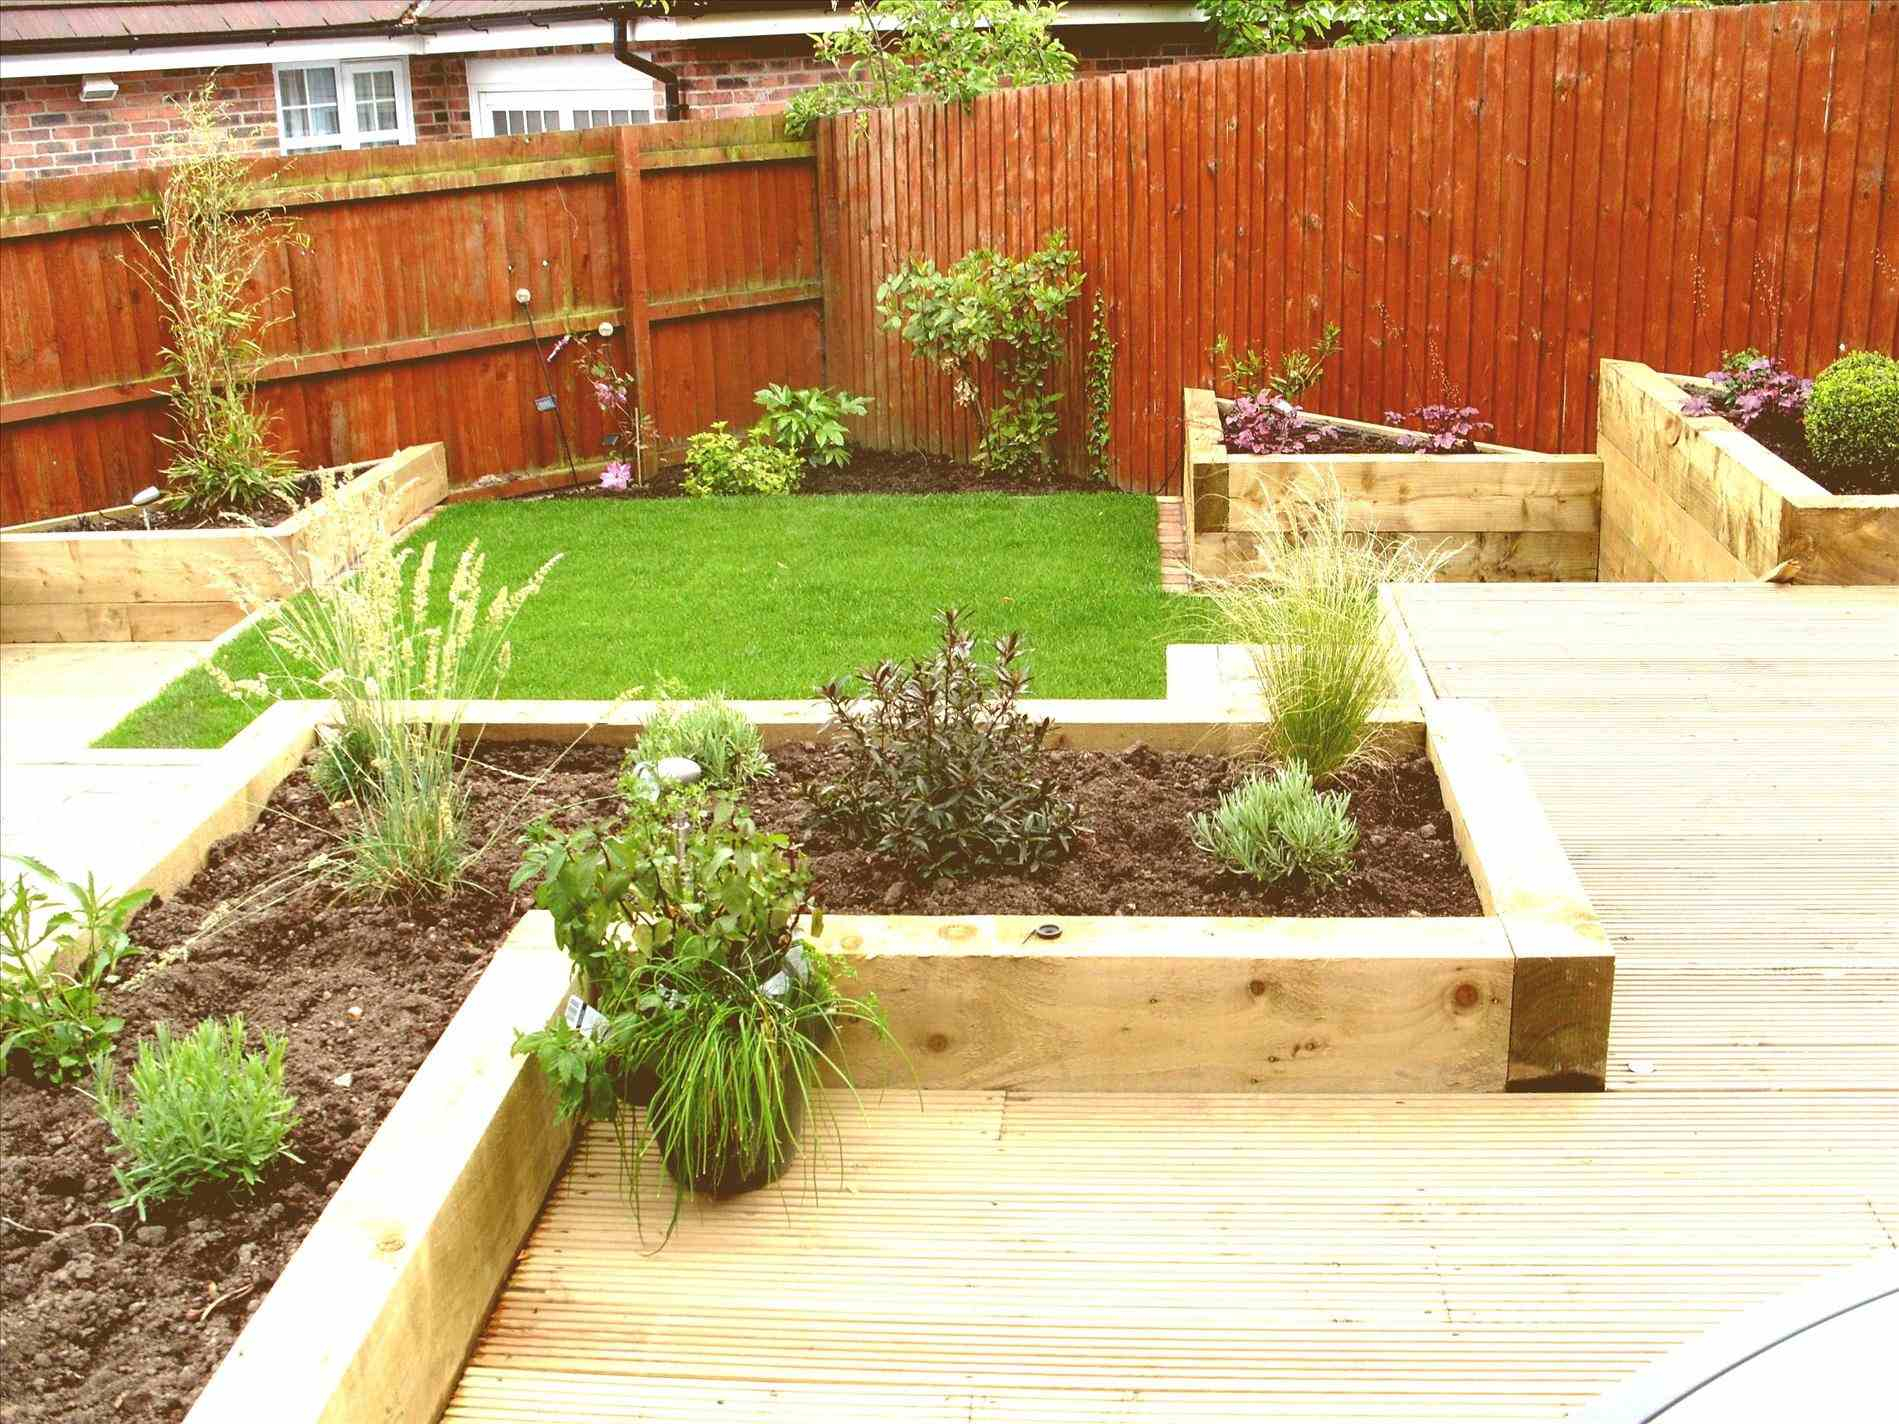 Ideas Low Cost Backyard Landscaping Ideas Terraced Yard inside 11 Clever Ideas How to Upgrade Cost Of Backyard Landscaping